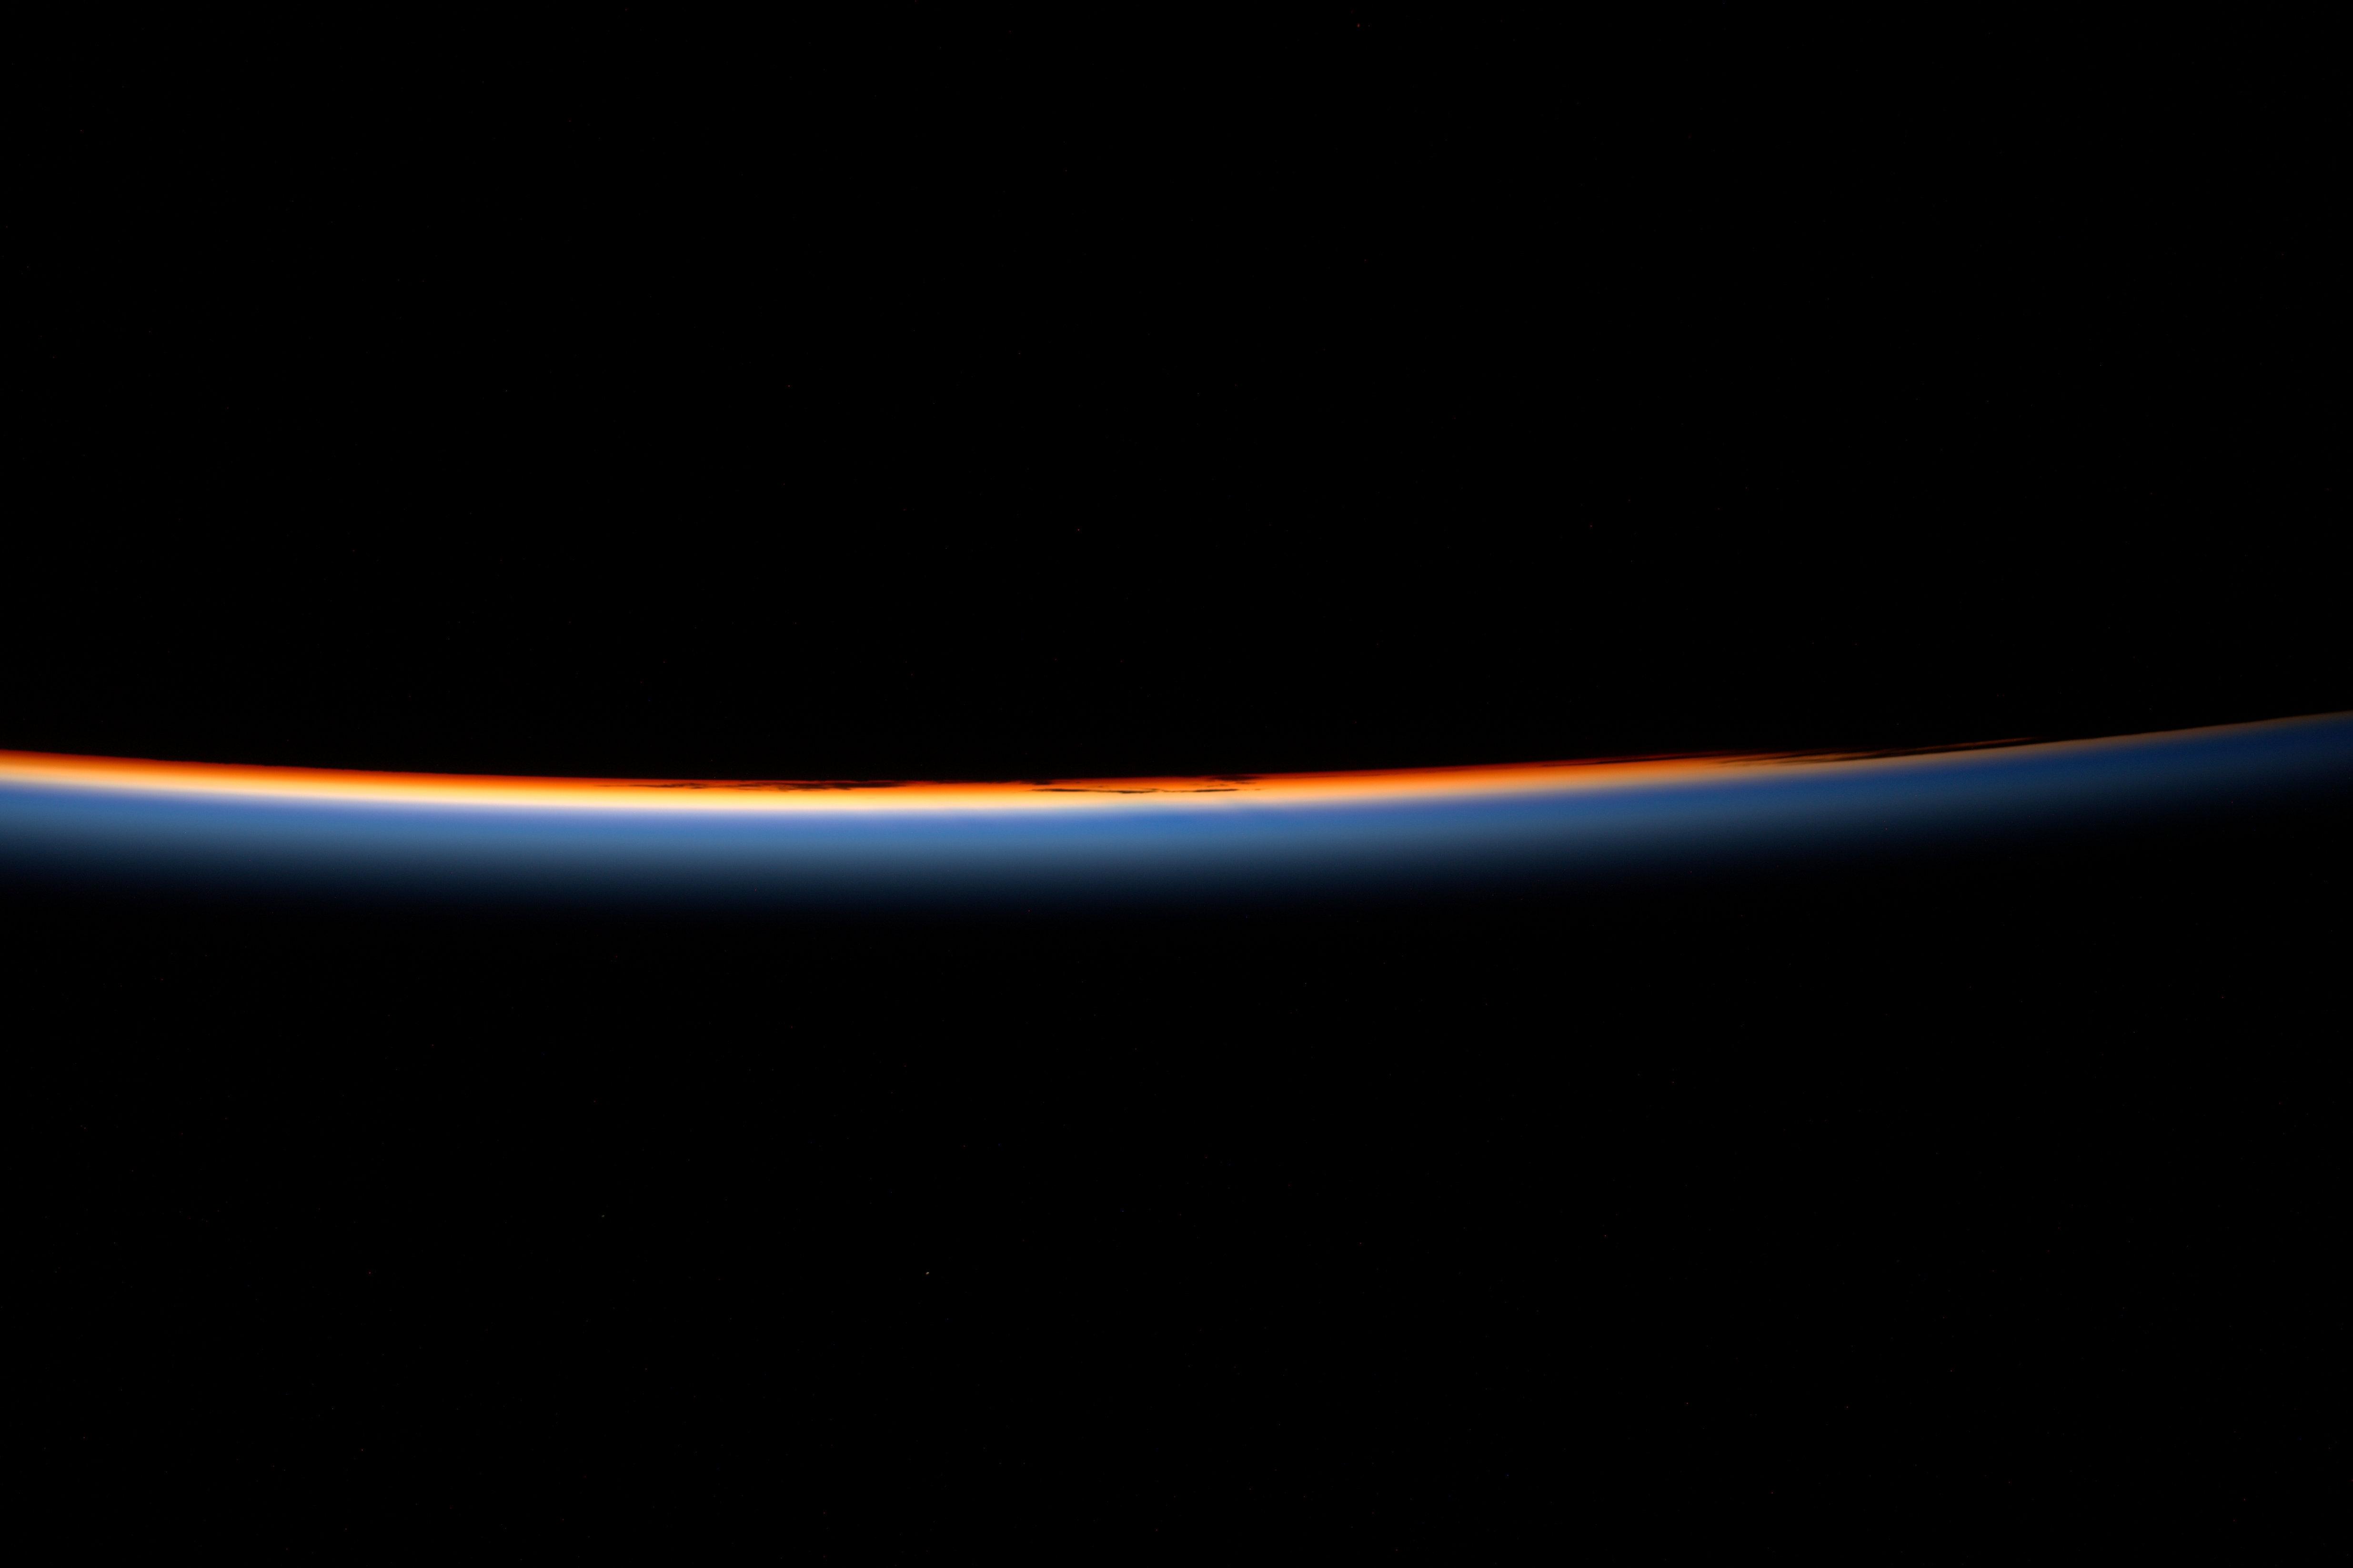 Space in Images - 2017 - 02 - Space sunrise